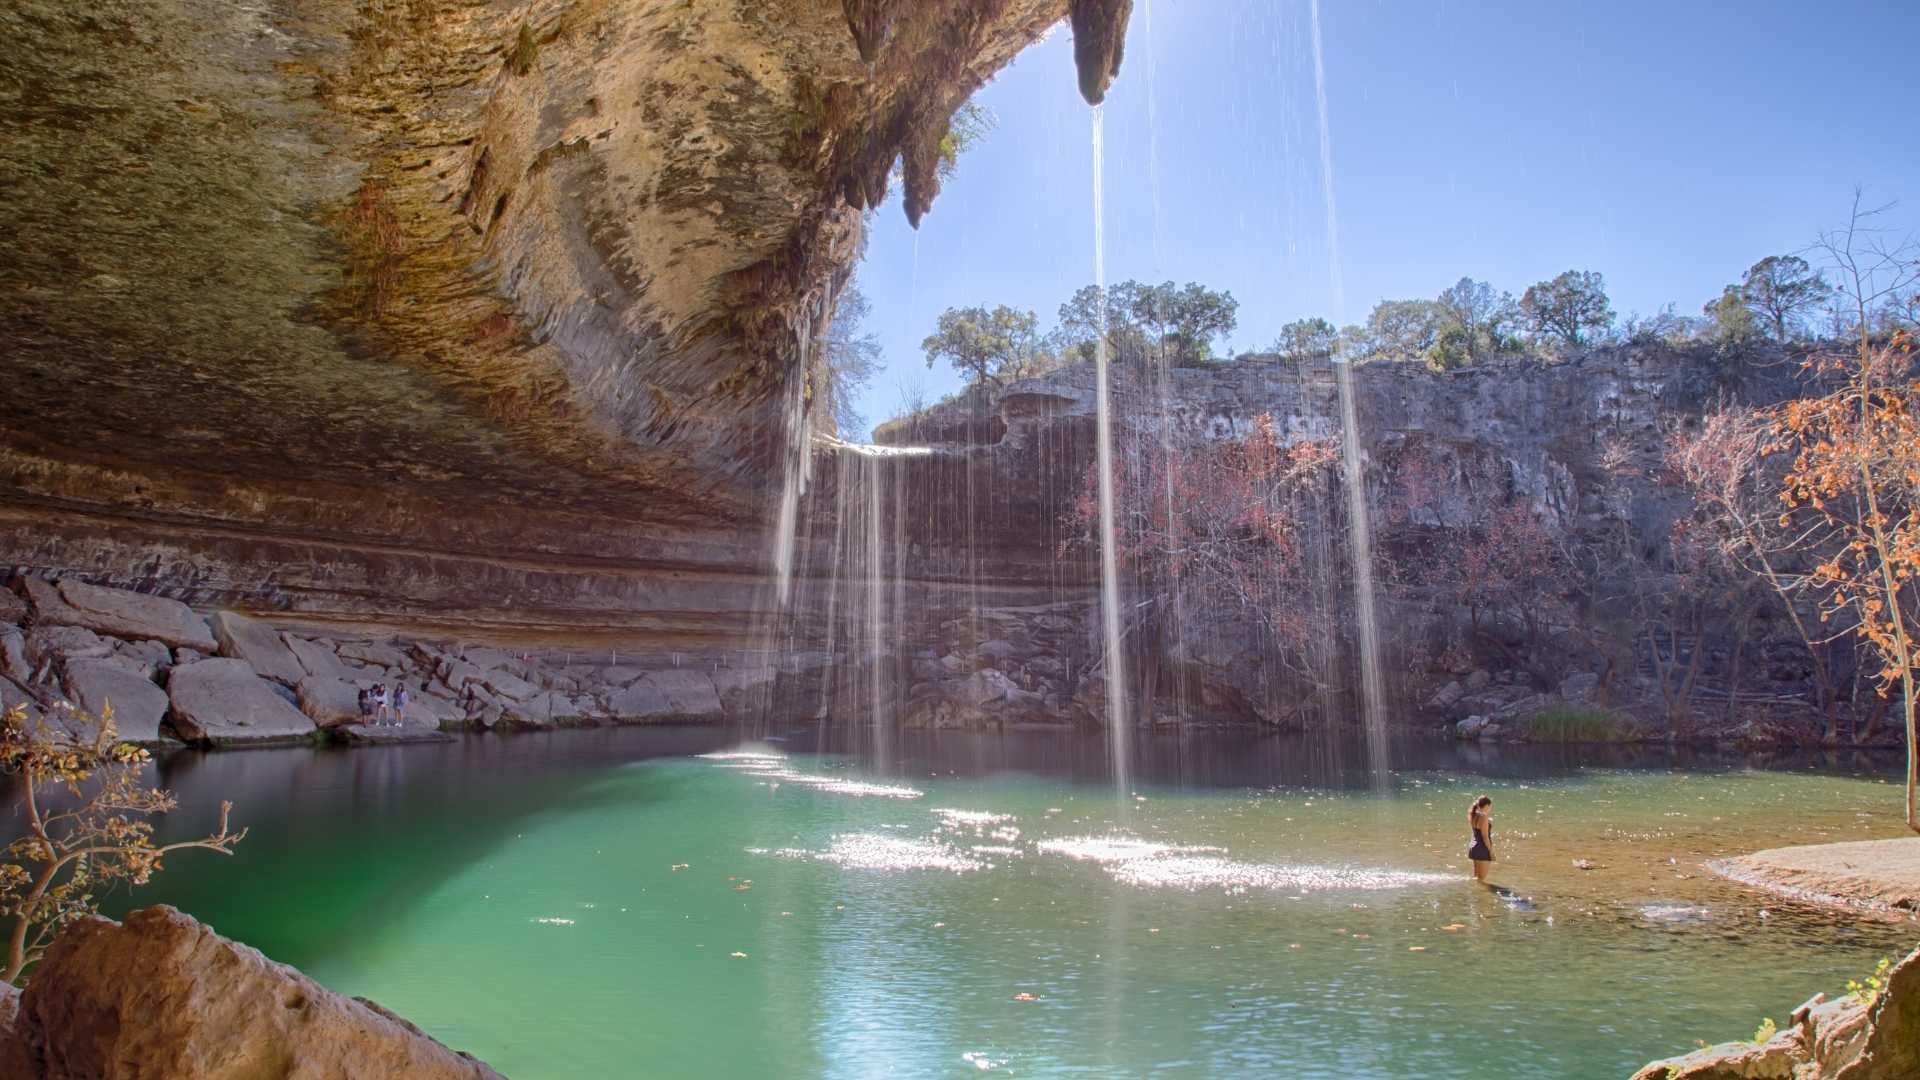 Dripping Springs Texas road trip with friends